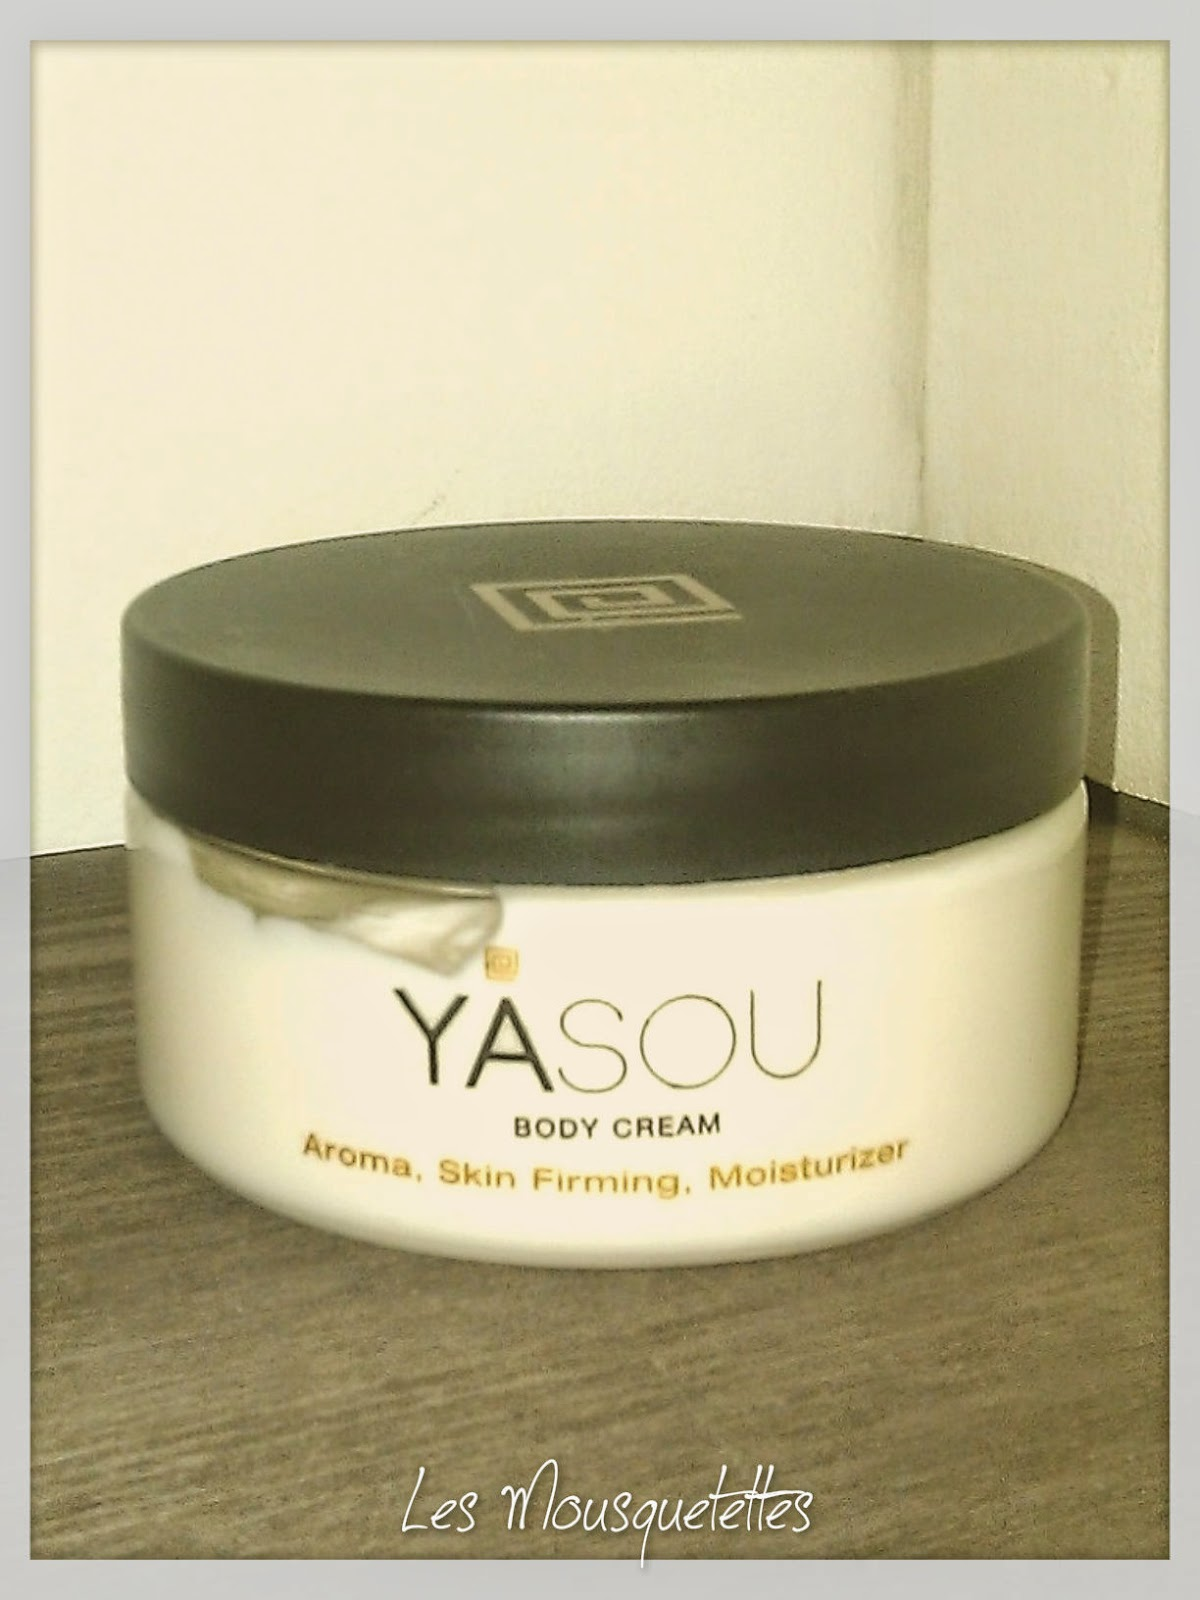 Hydrating Body Cream Yasou Skincare - Les Mousquetettes©